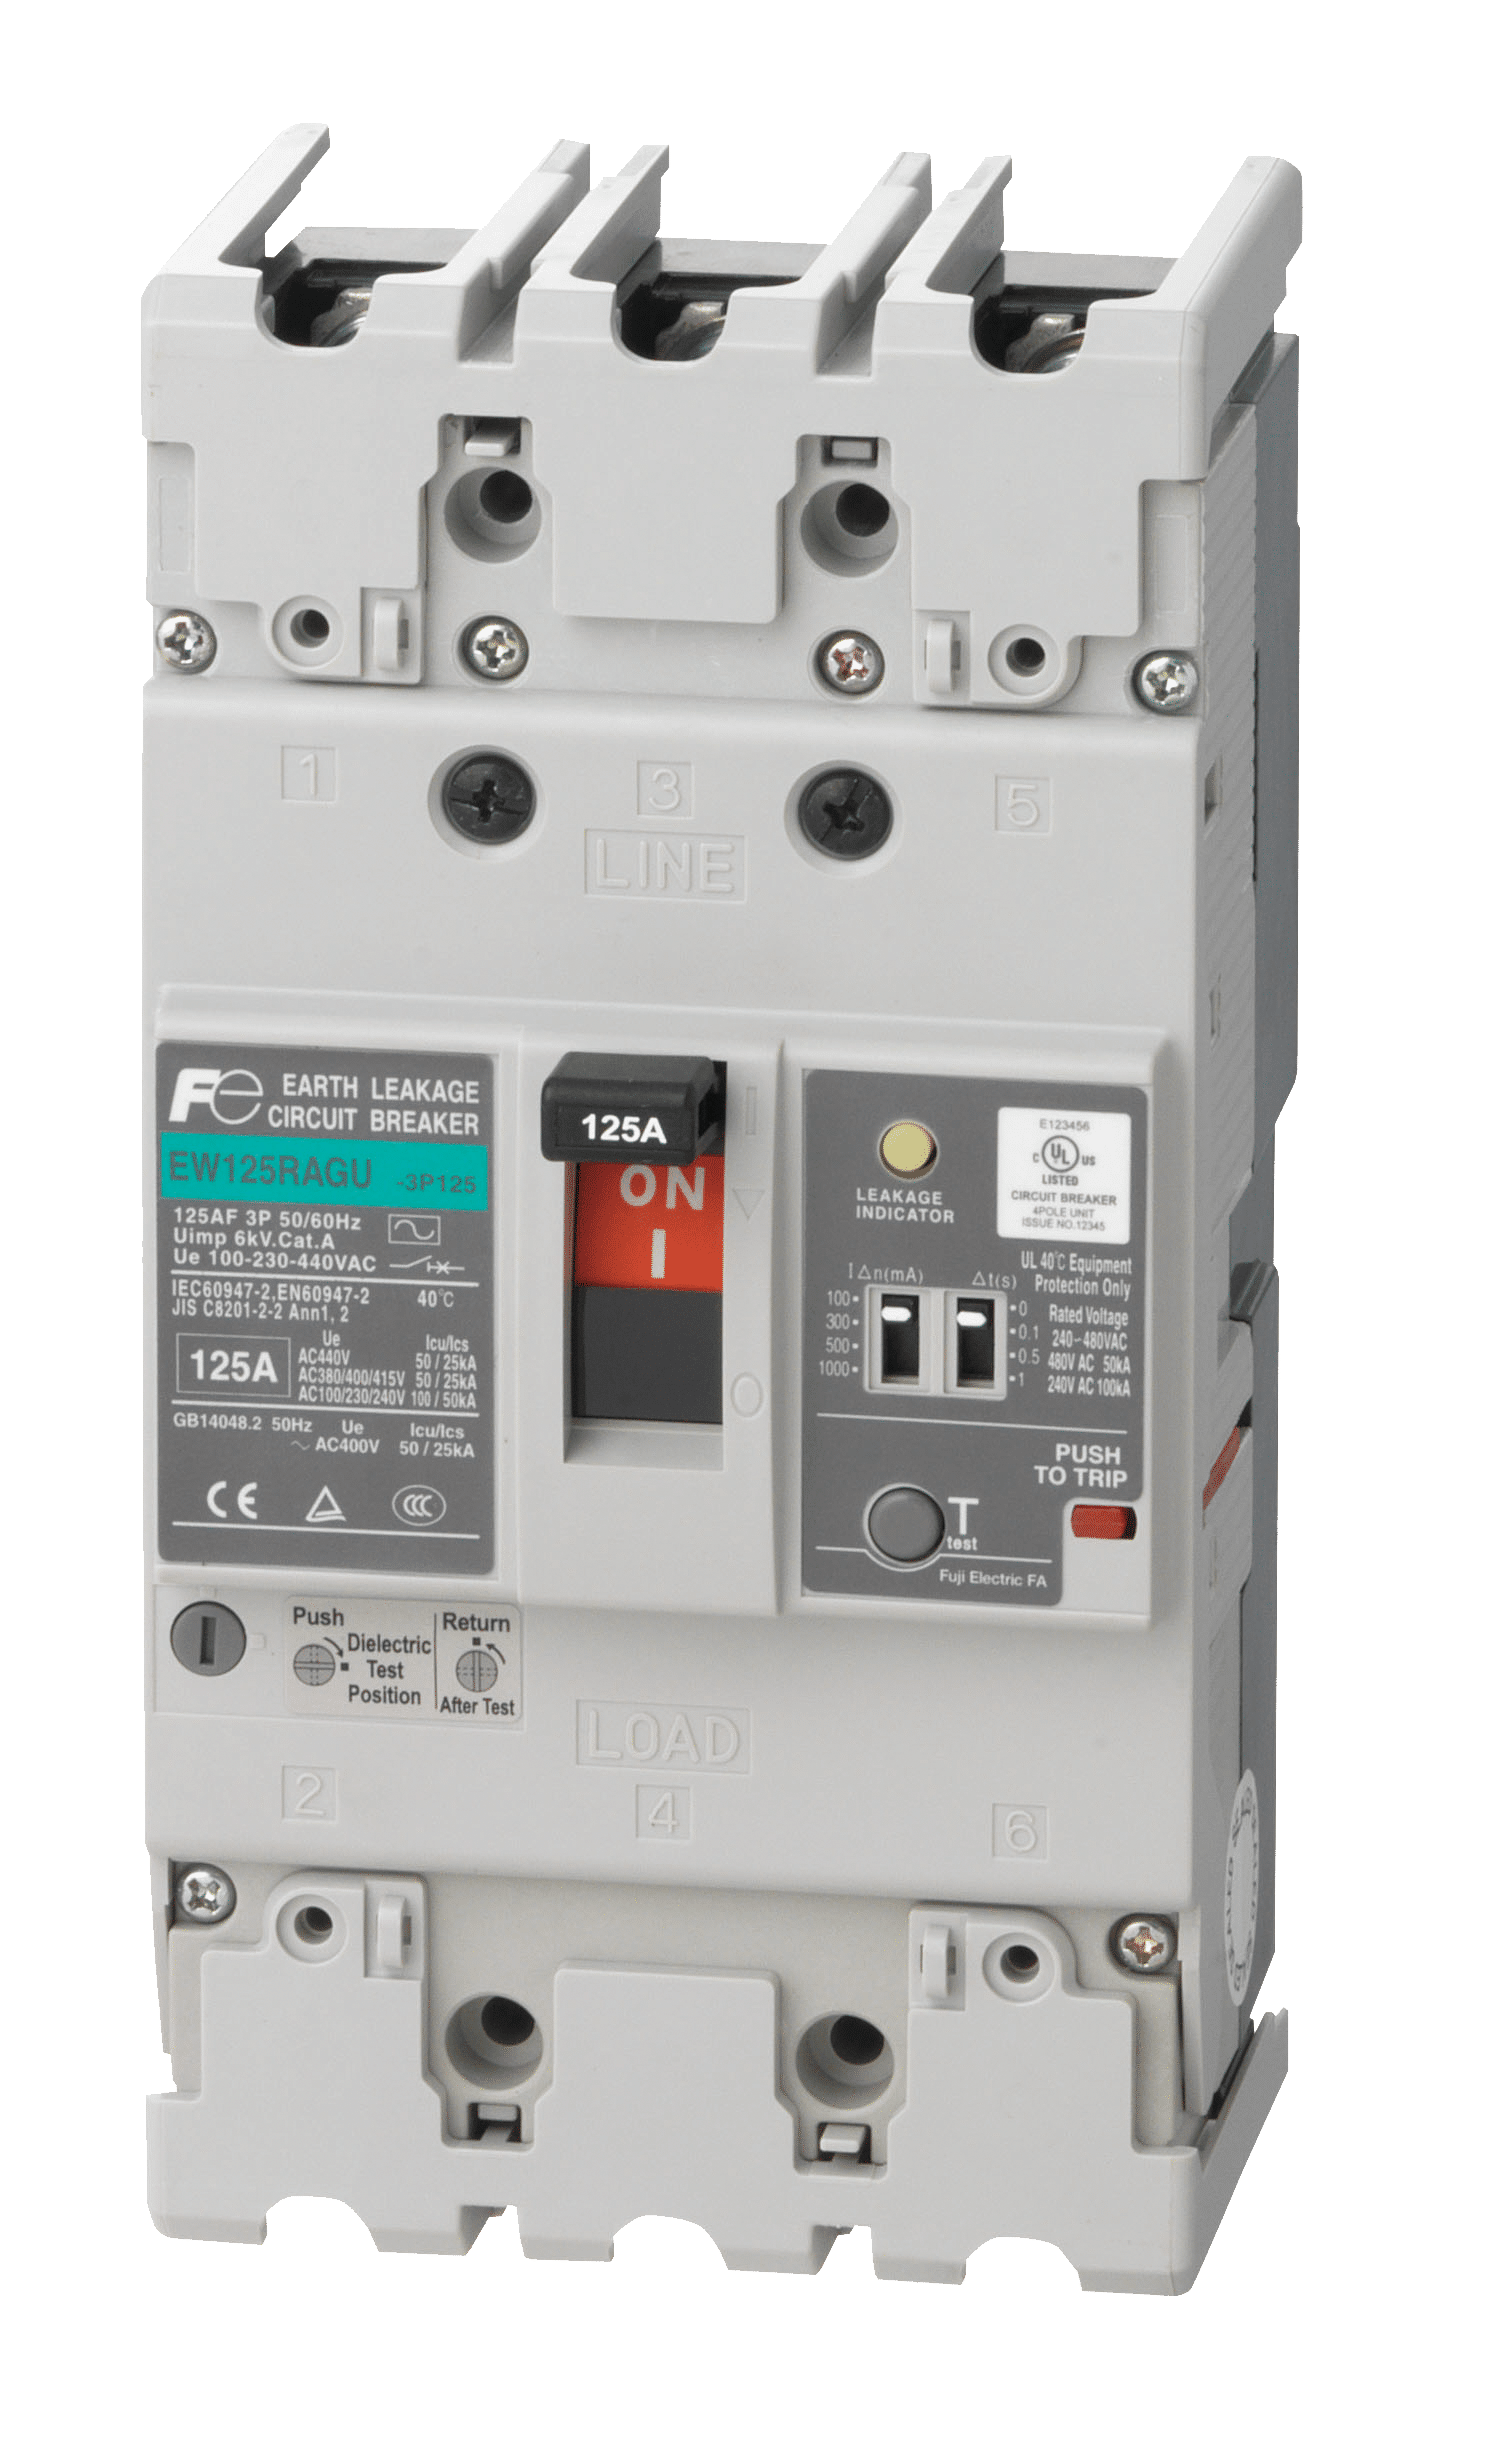 Earth Leakage Circuit Breaker Elcb Manufacturer Fuji Electric Details About 200a 12v Replace Car Fuse 200 Amp Breakers